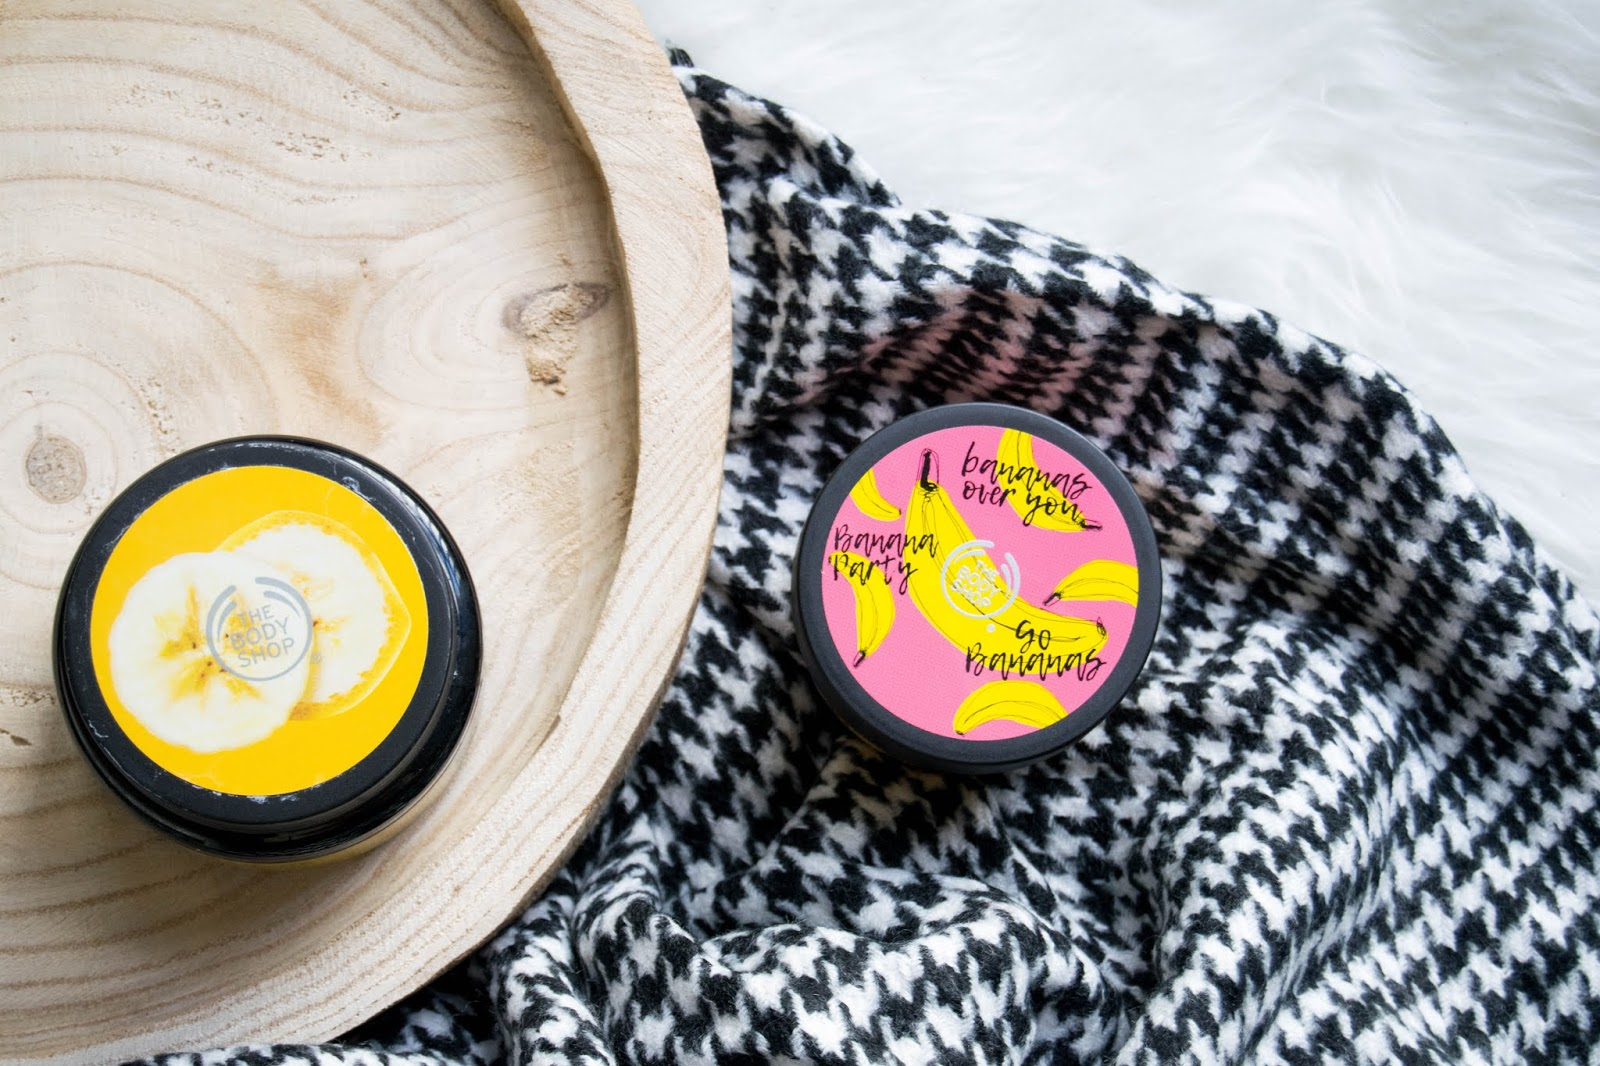 The Body Shop Banana Hair Mask & The Body Shop Banana Body Yogurt